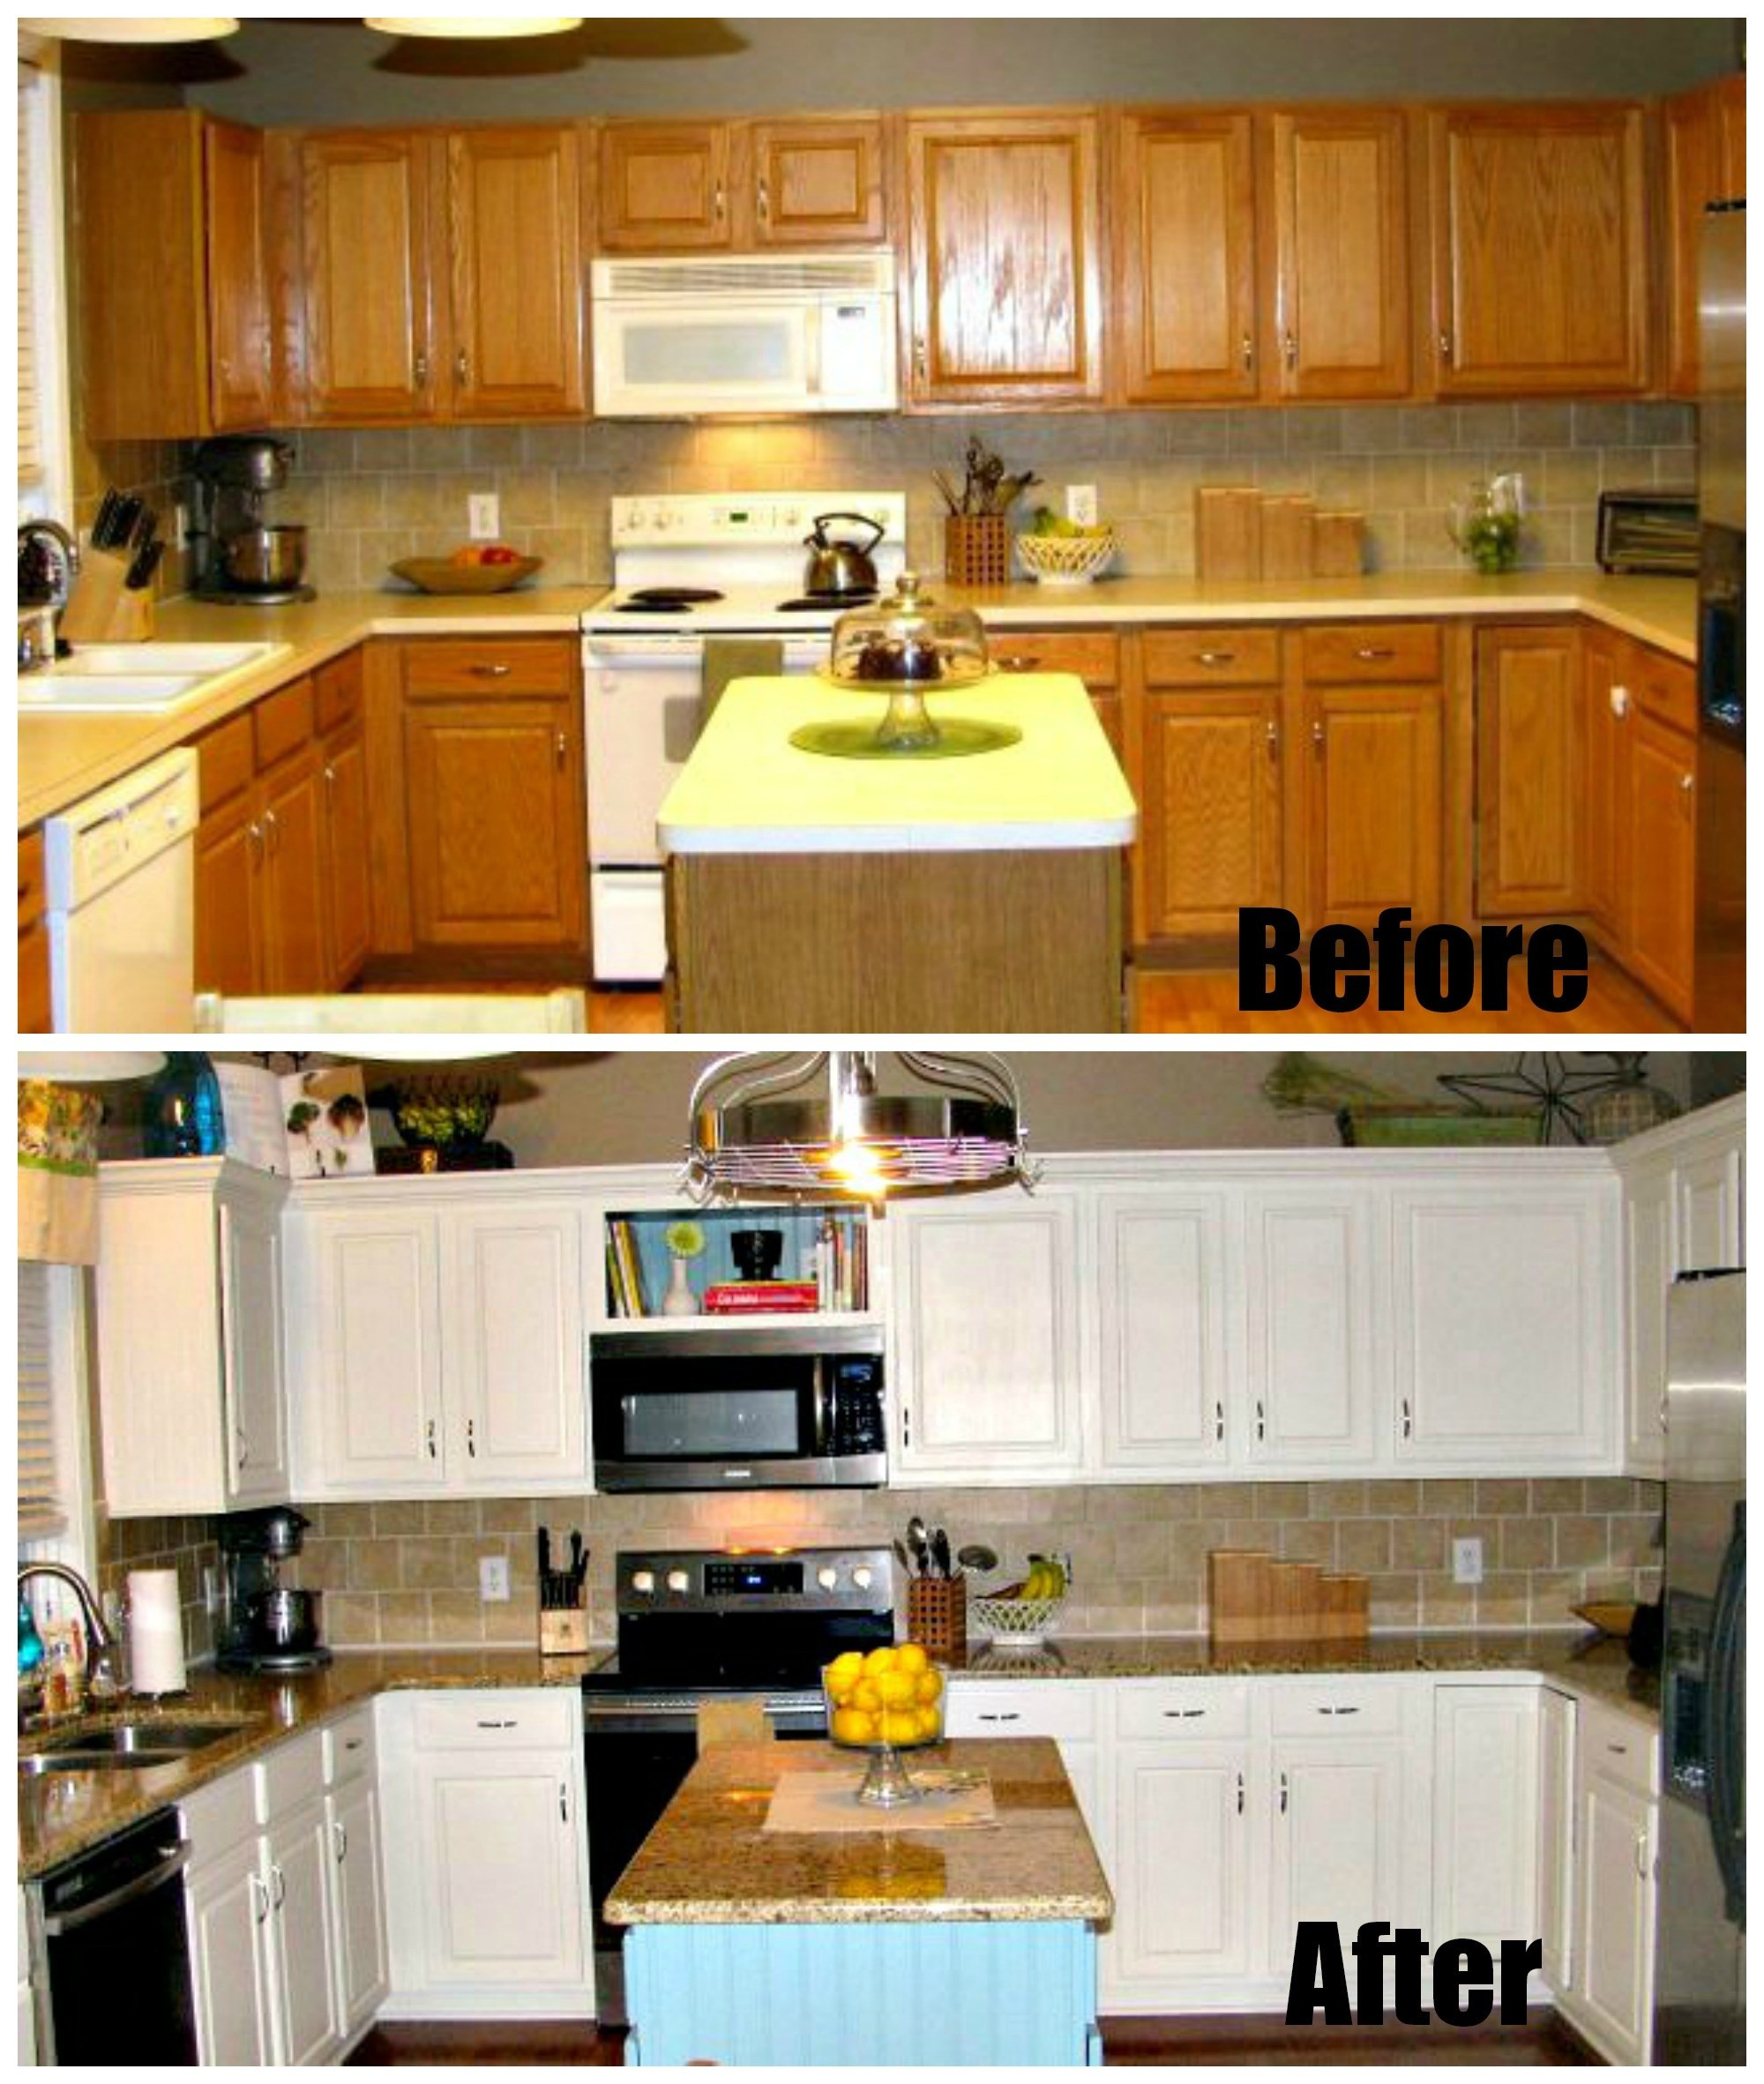 Best ideas about Diy Kitchen Ideas On A Budget . Save or Pin Kitchen Amusing Design Diy Kitchen Remodel For Decor Now.